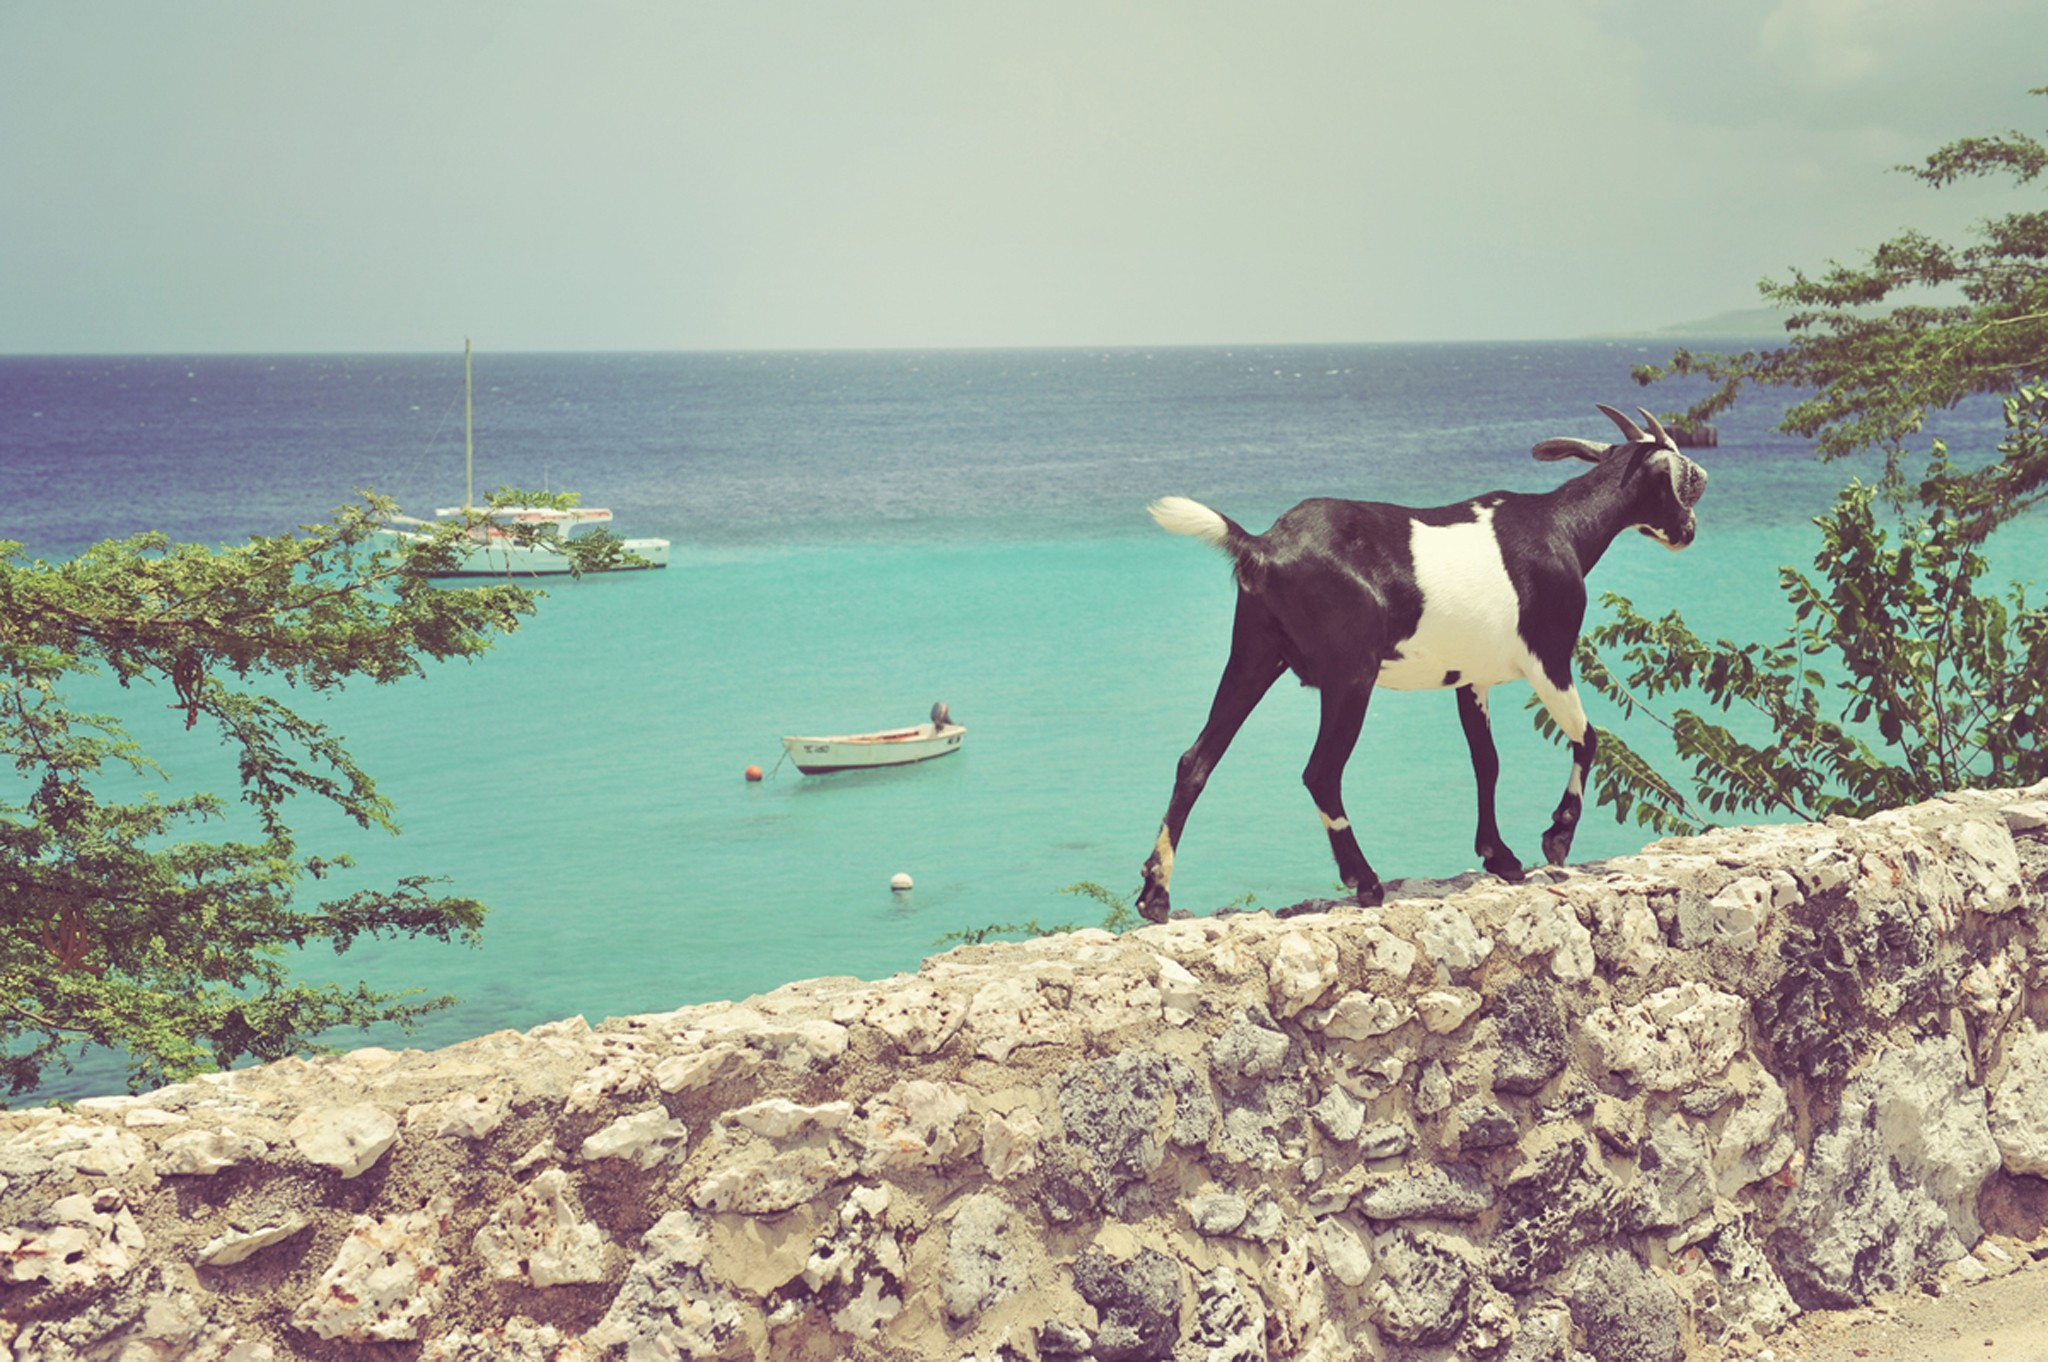 kleincuracao_caribbean_destination_Nature_Goat